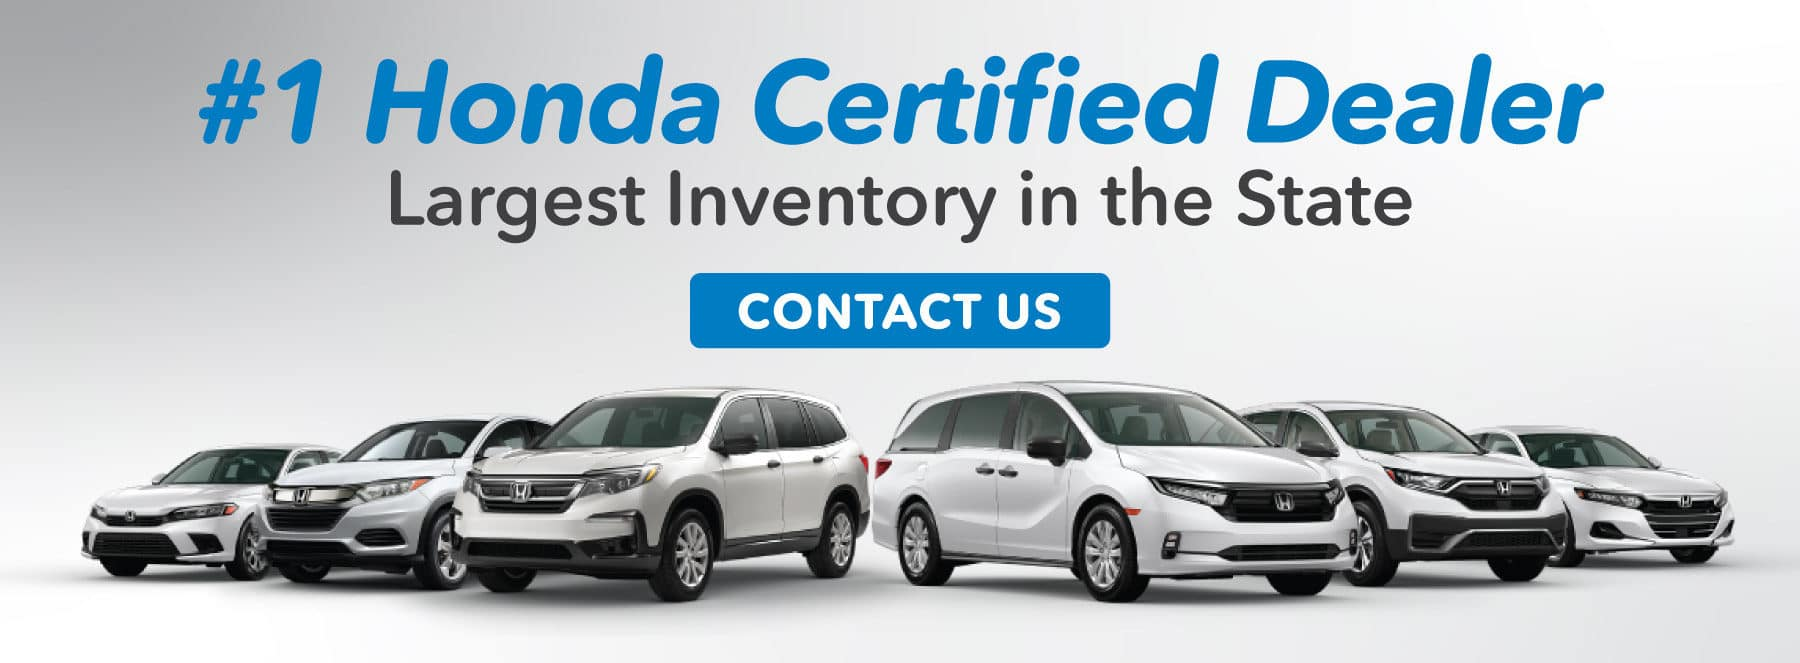 #1 Honda Certified Dealer - Largest inventory in the state - Contact Us